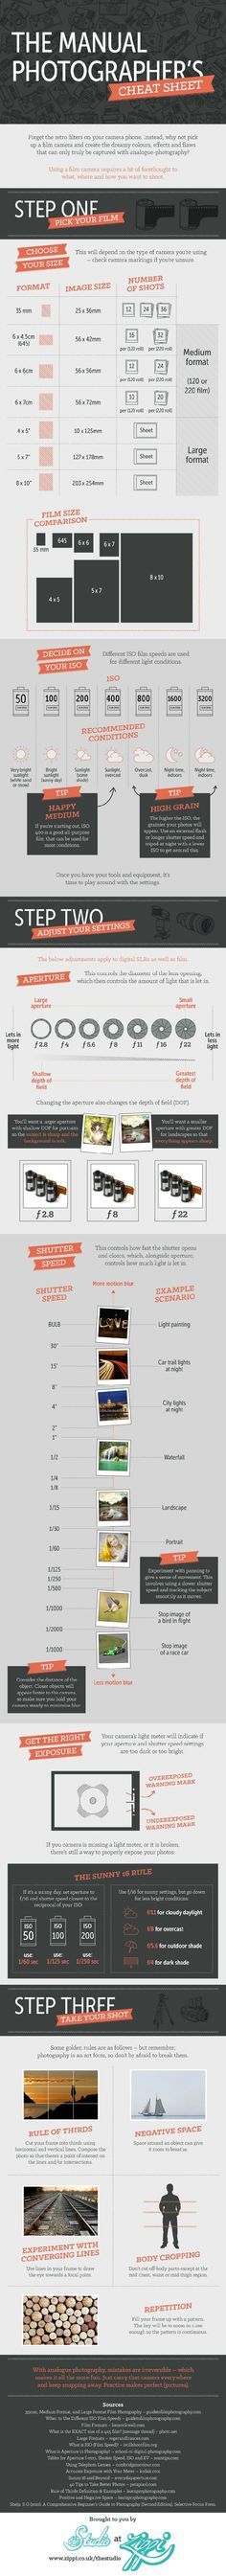 Cheat Sheet: Getting Control over Your Camera in Manual Mode - Digital Photography School